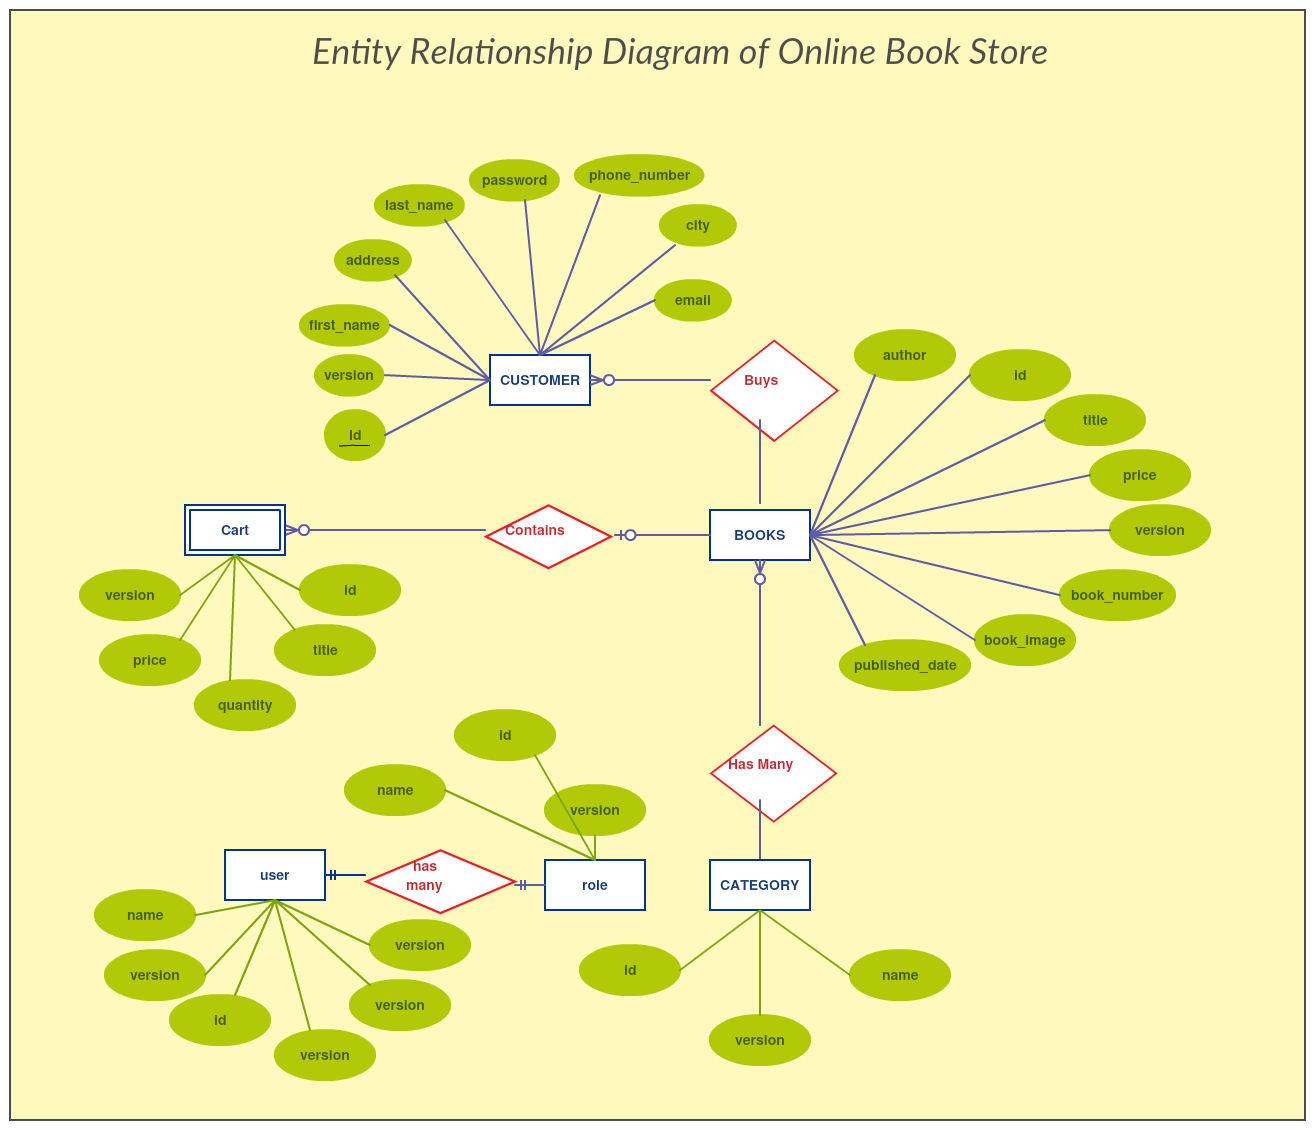 Pin On Entity Relationship Diagram Templates with Er Diagram Bookstore